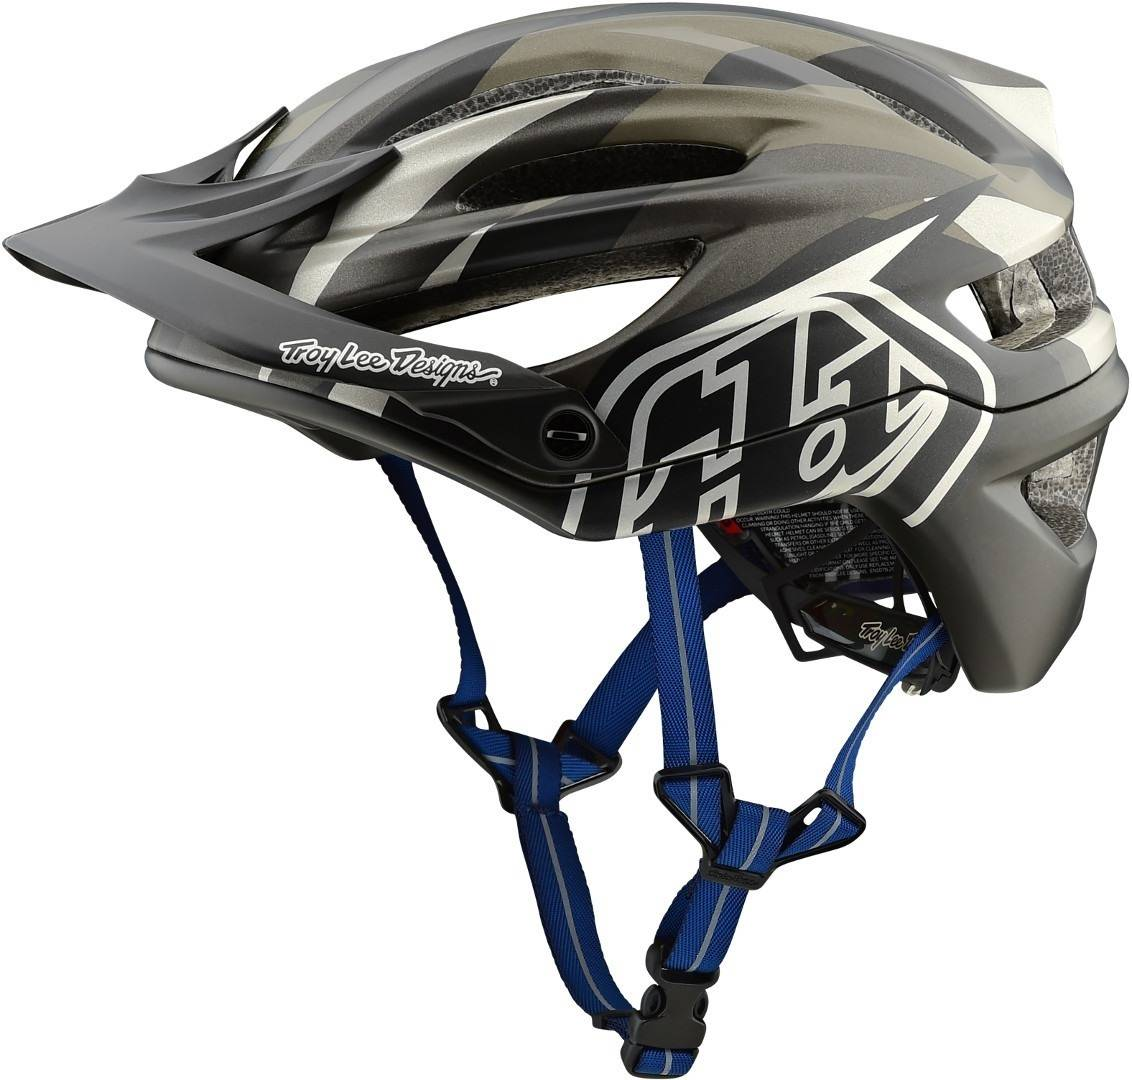 Lee Troy Lee Designs A2 MIPS Jet Bycicle Helmet  - Size: Small